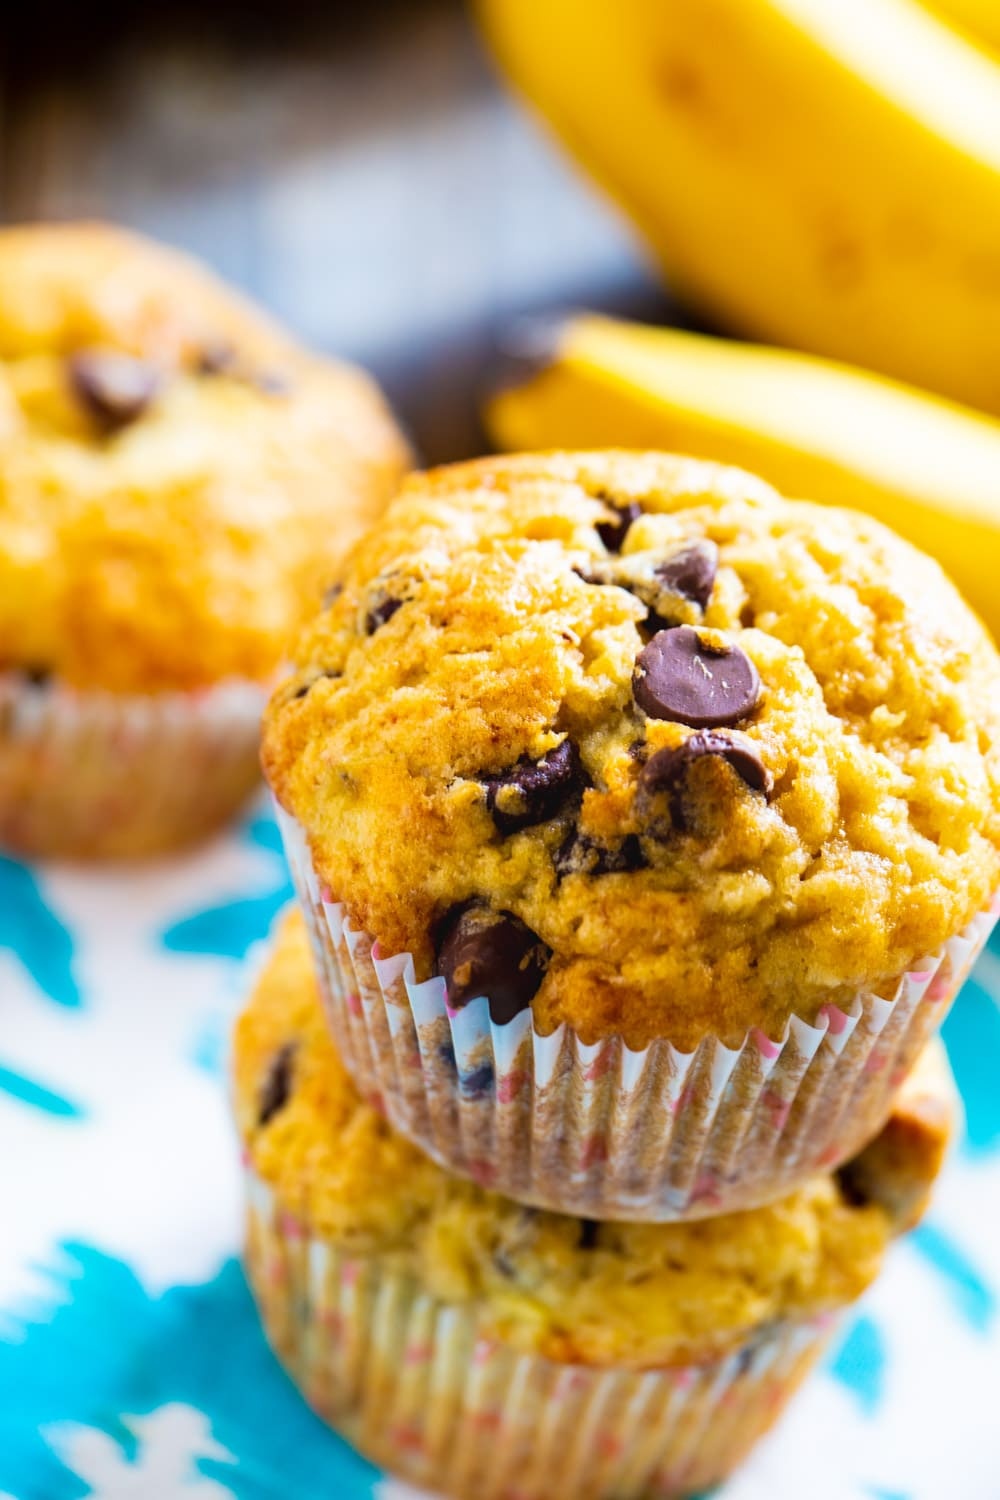 Two muffins stacked on top of each other with fresh bananas in background.